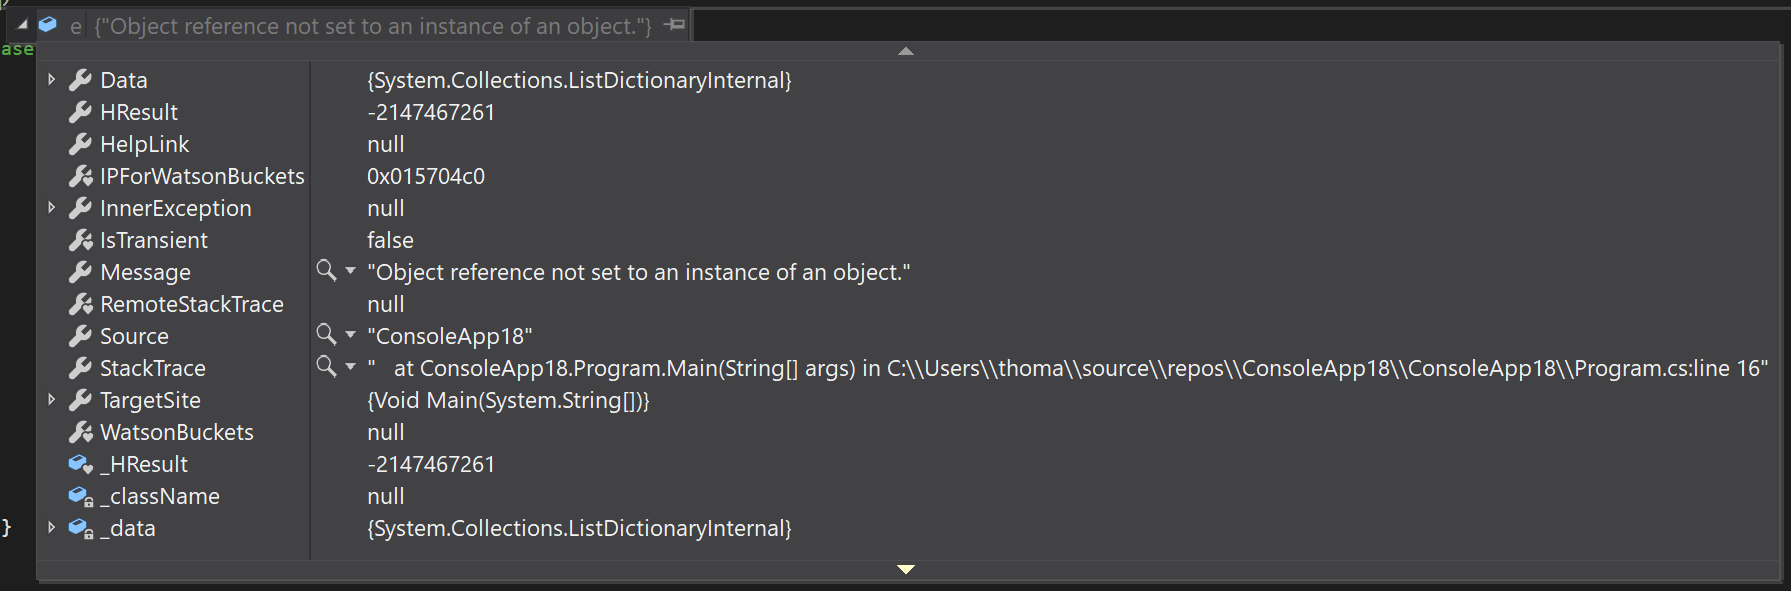 NullReferenceException in Visual Studio